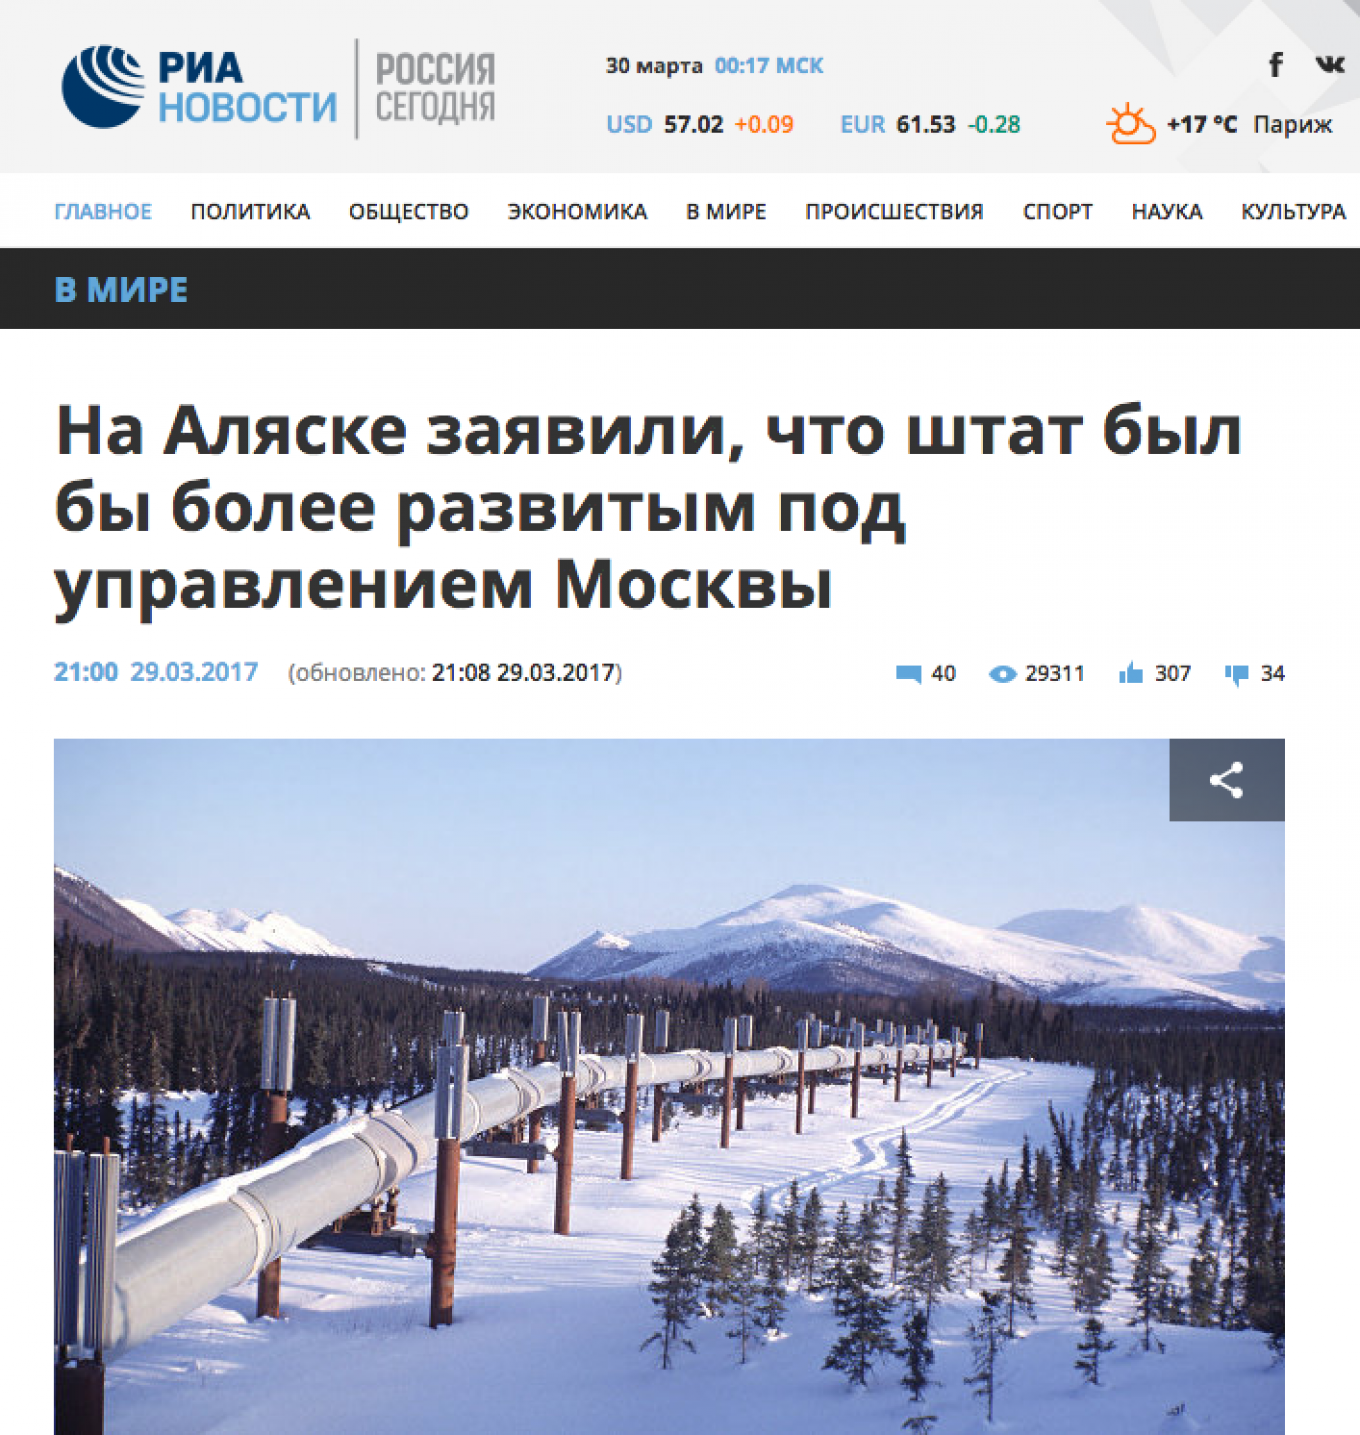 """RIA Novosti's original headline: """"In Alaska, Announcement That the State Would Be More Developed Under Moscow's Control"""""""